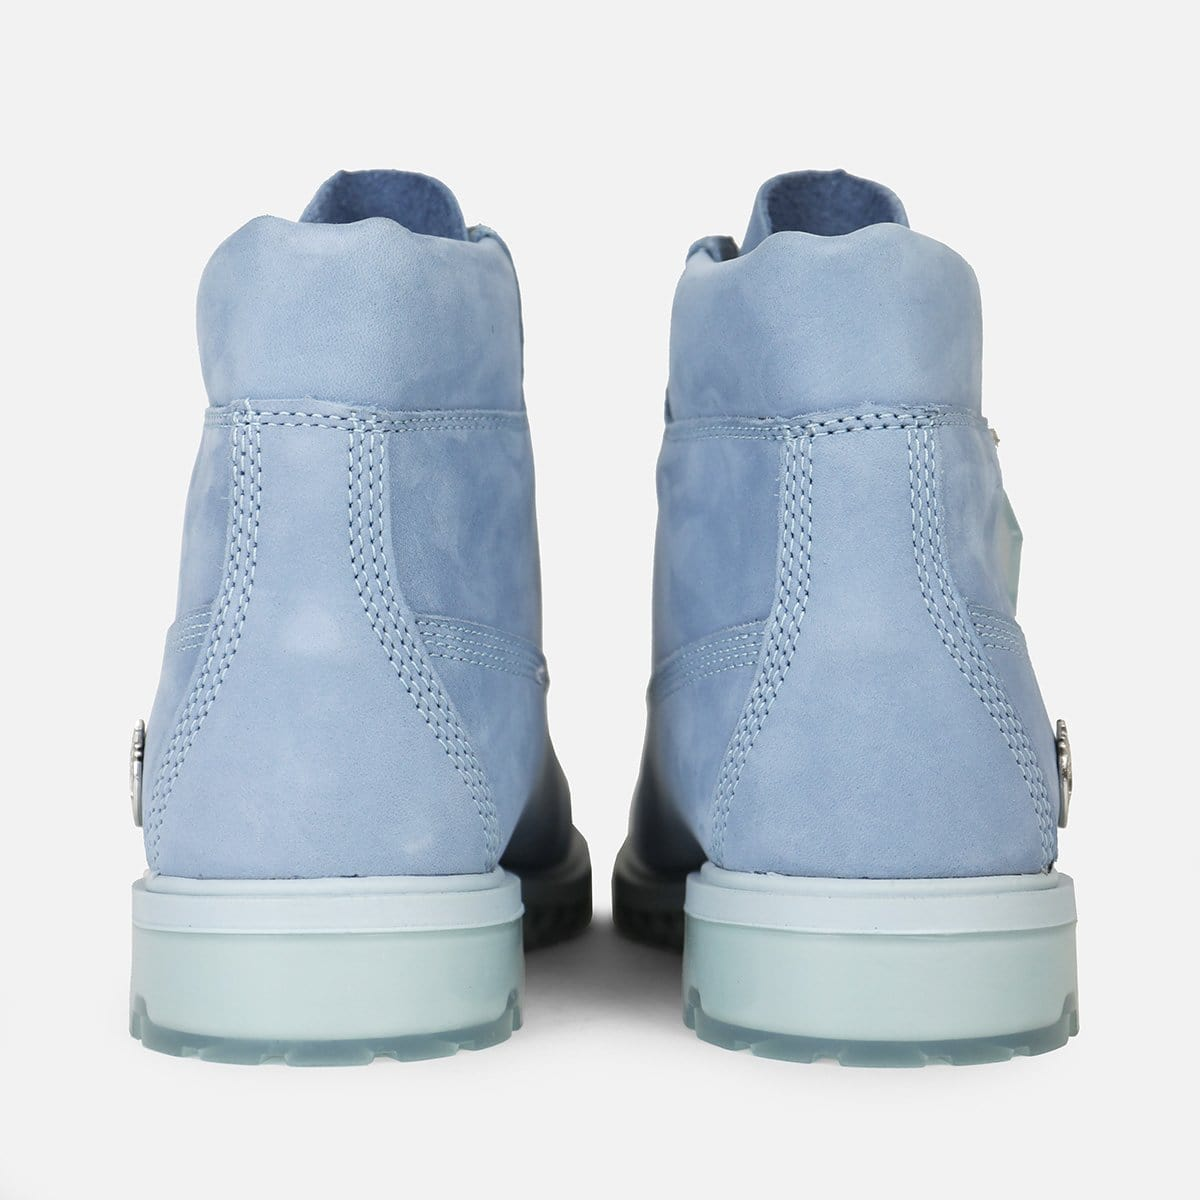 School timberlands Blue Champs Sports Mobile  Champs Sports Mobile